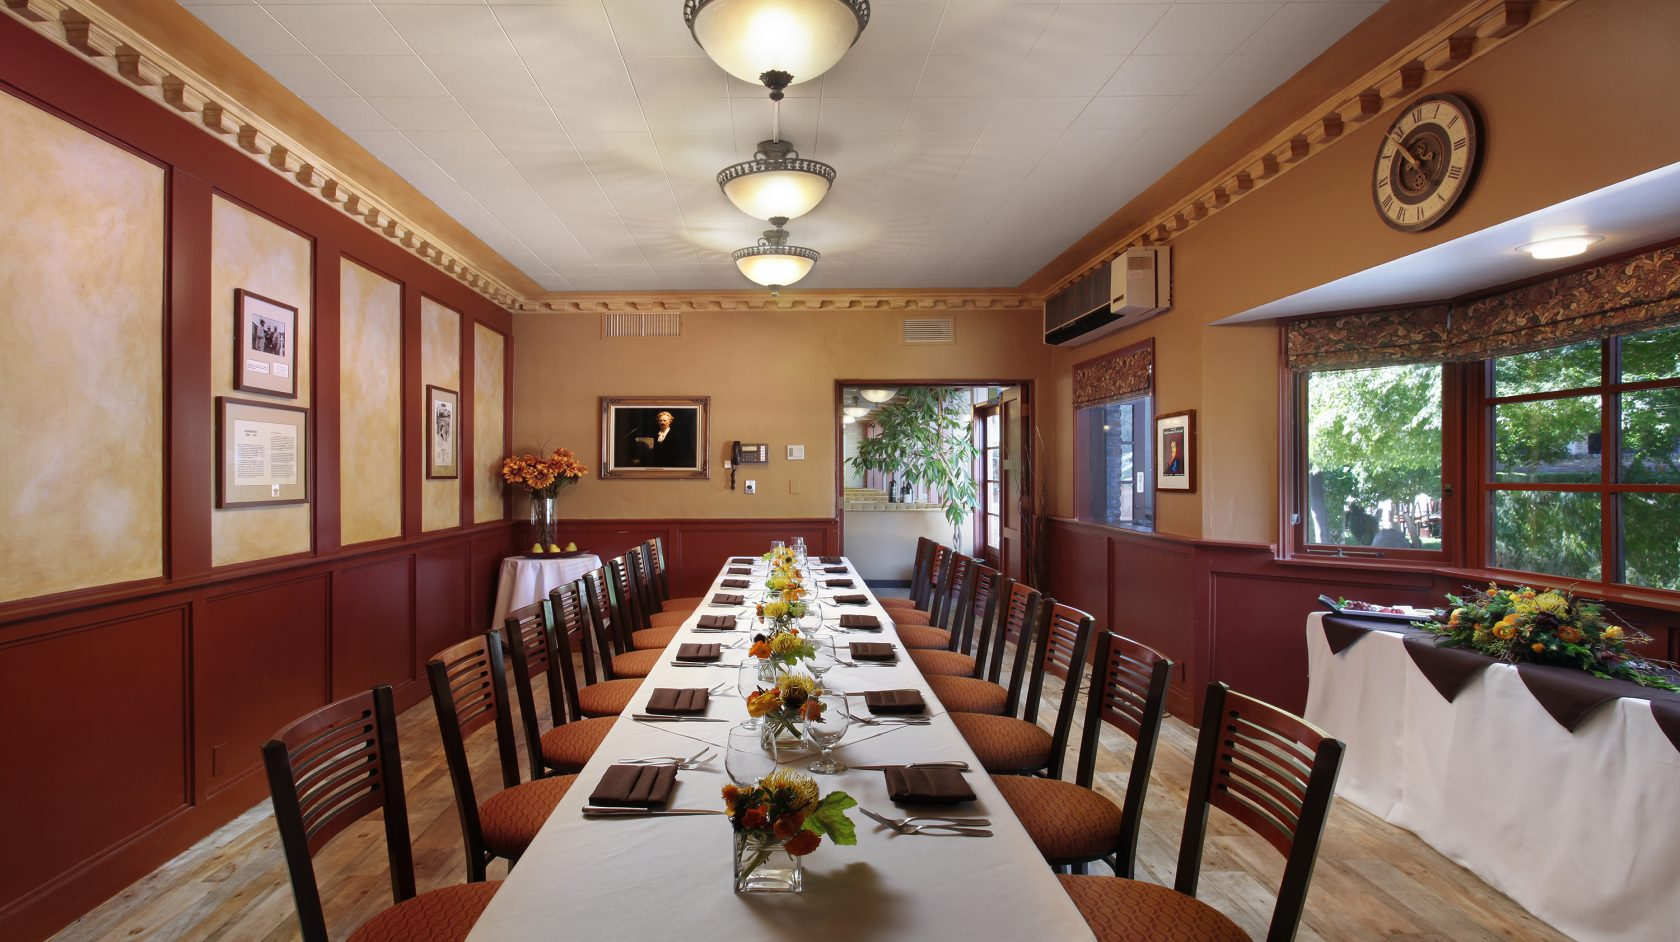 Paderewski Room set for elegant meal